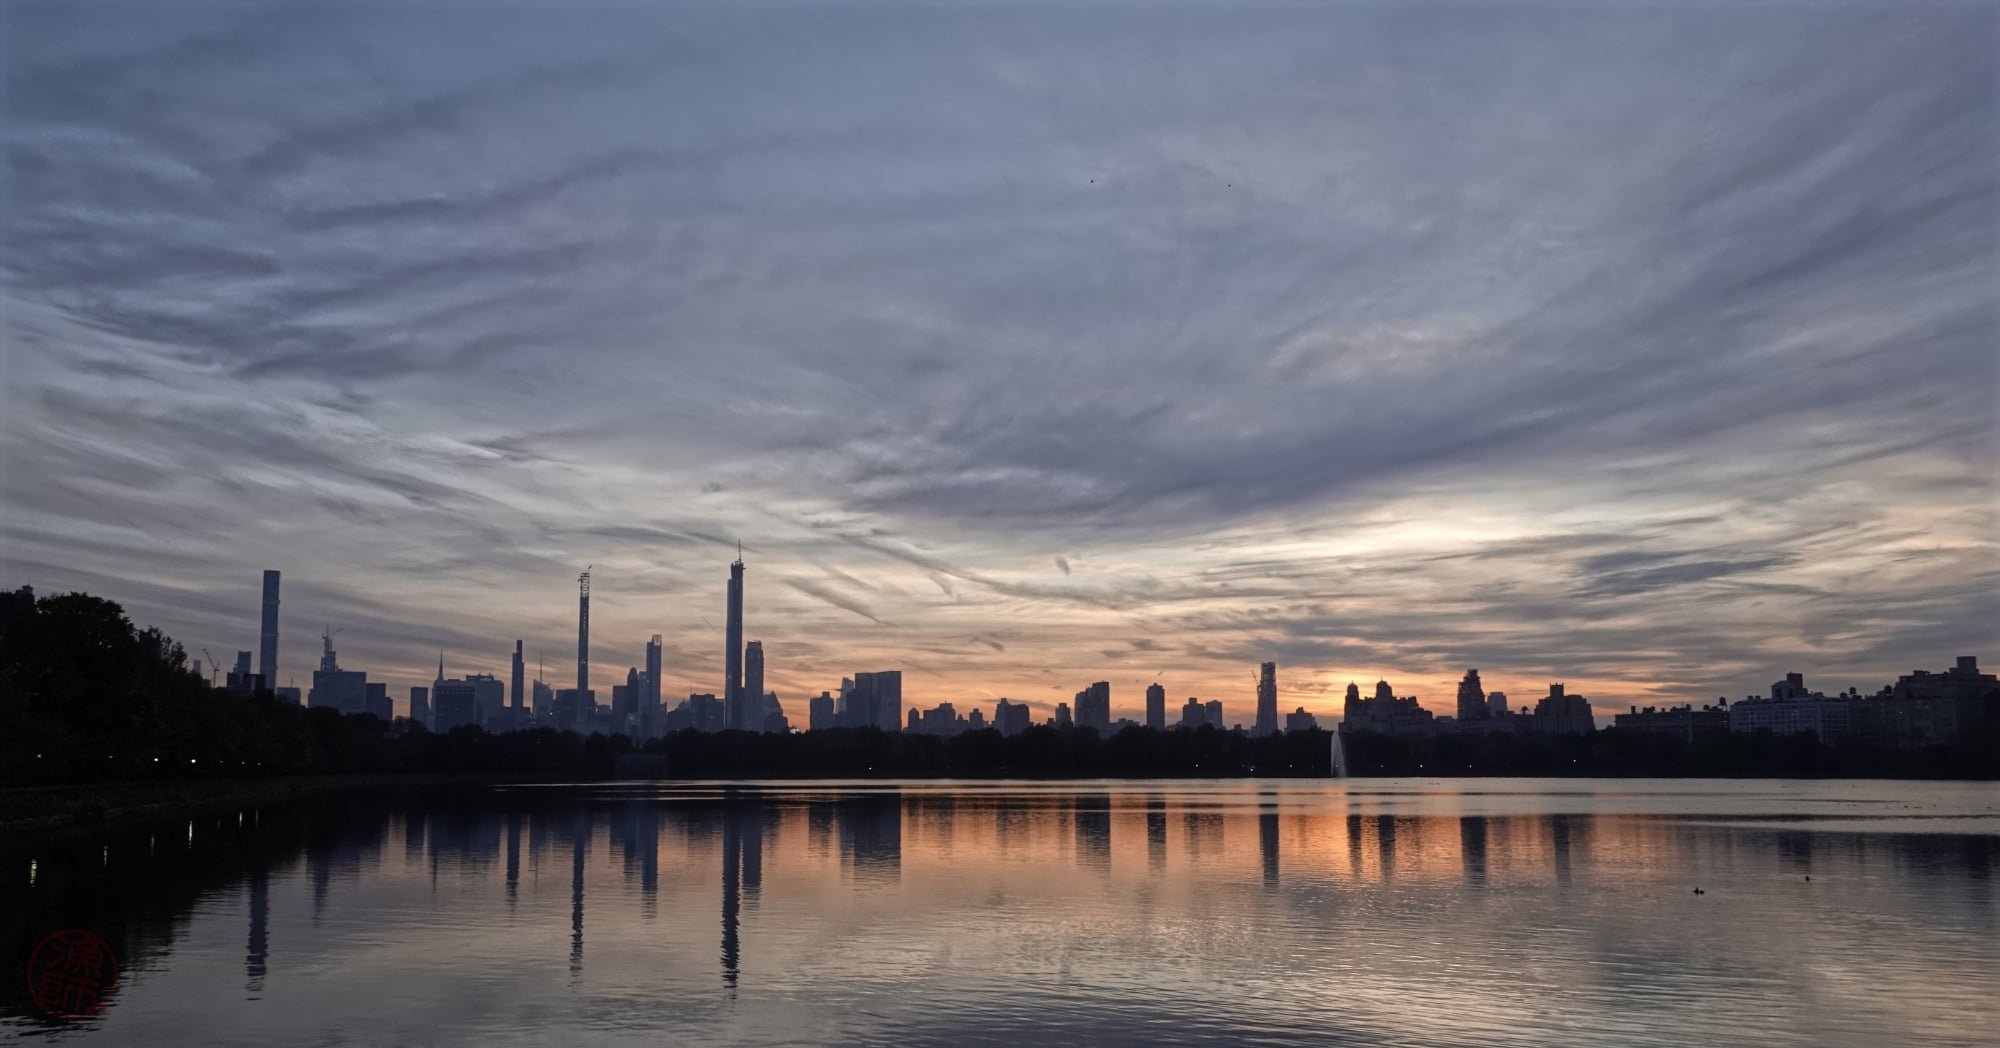 Dusk in the Central Park